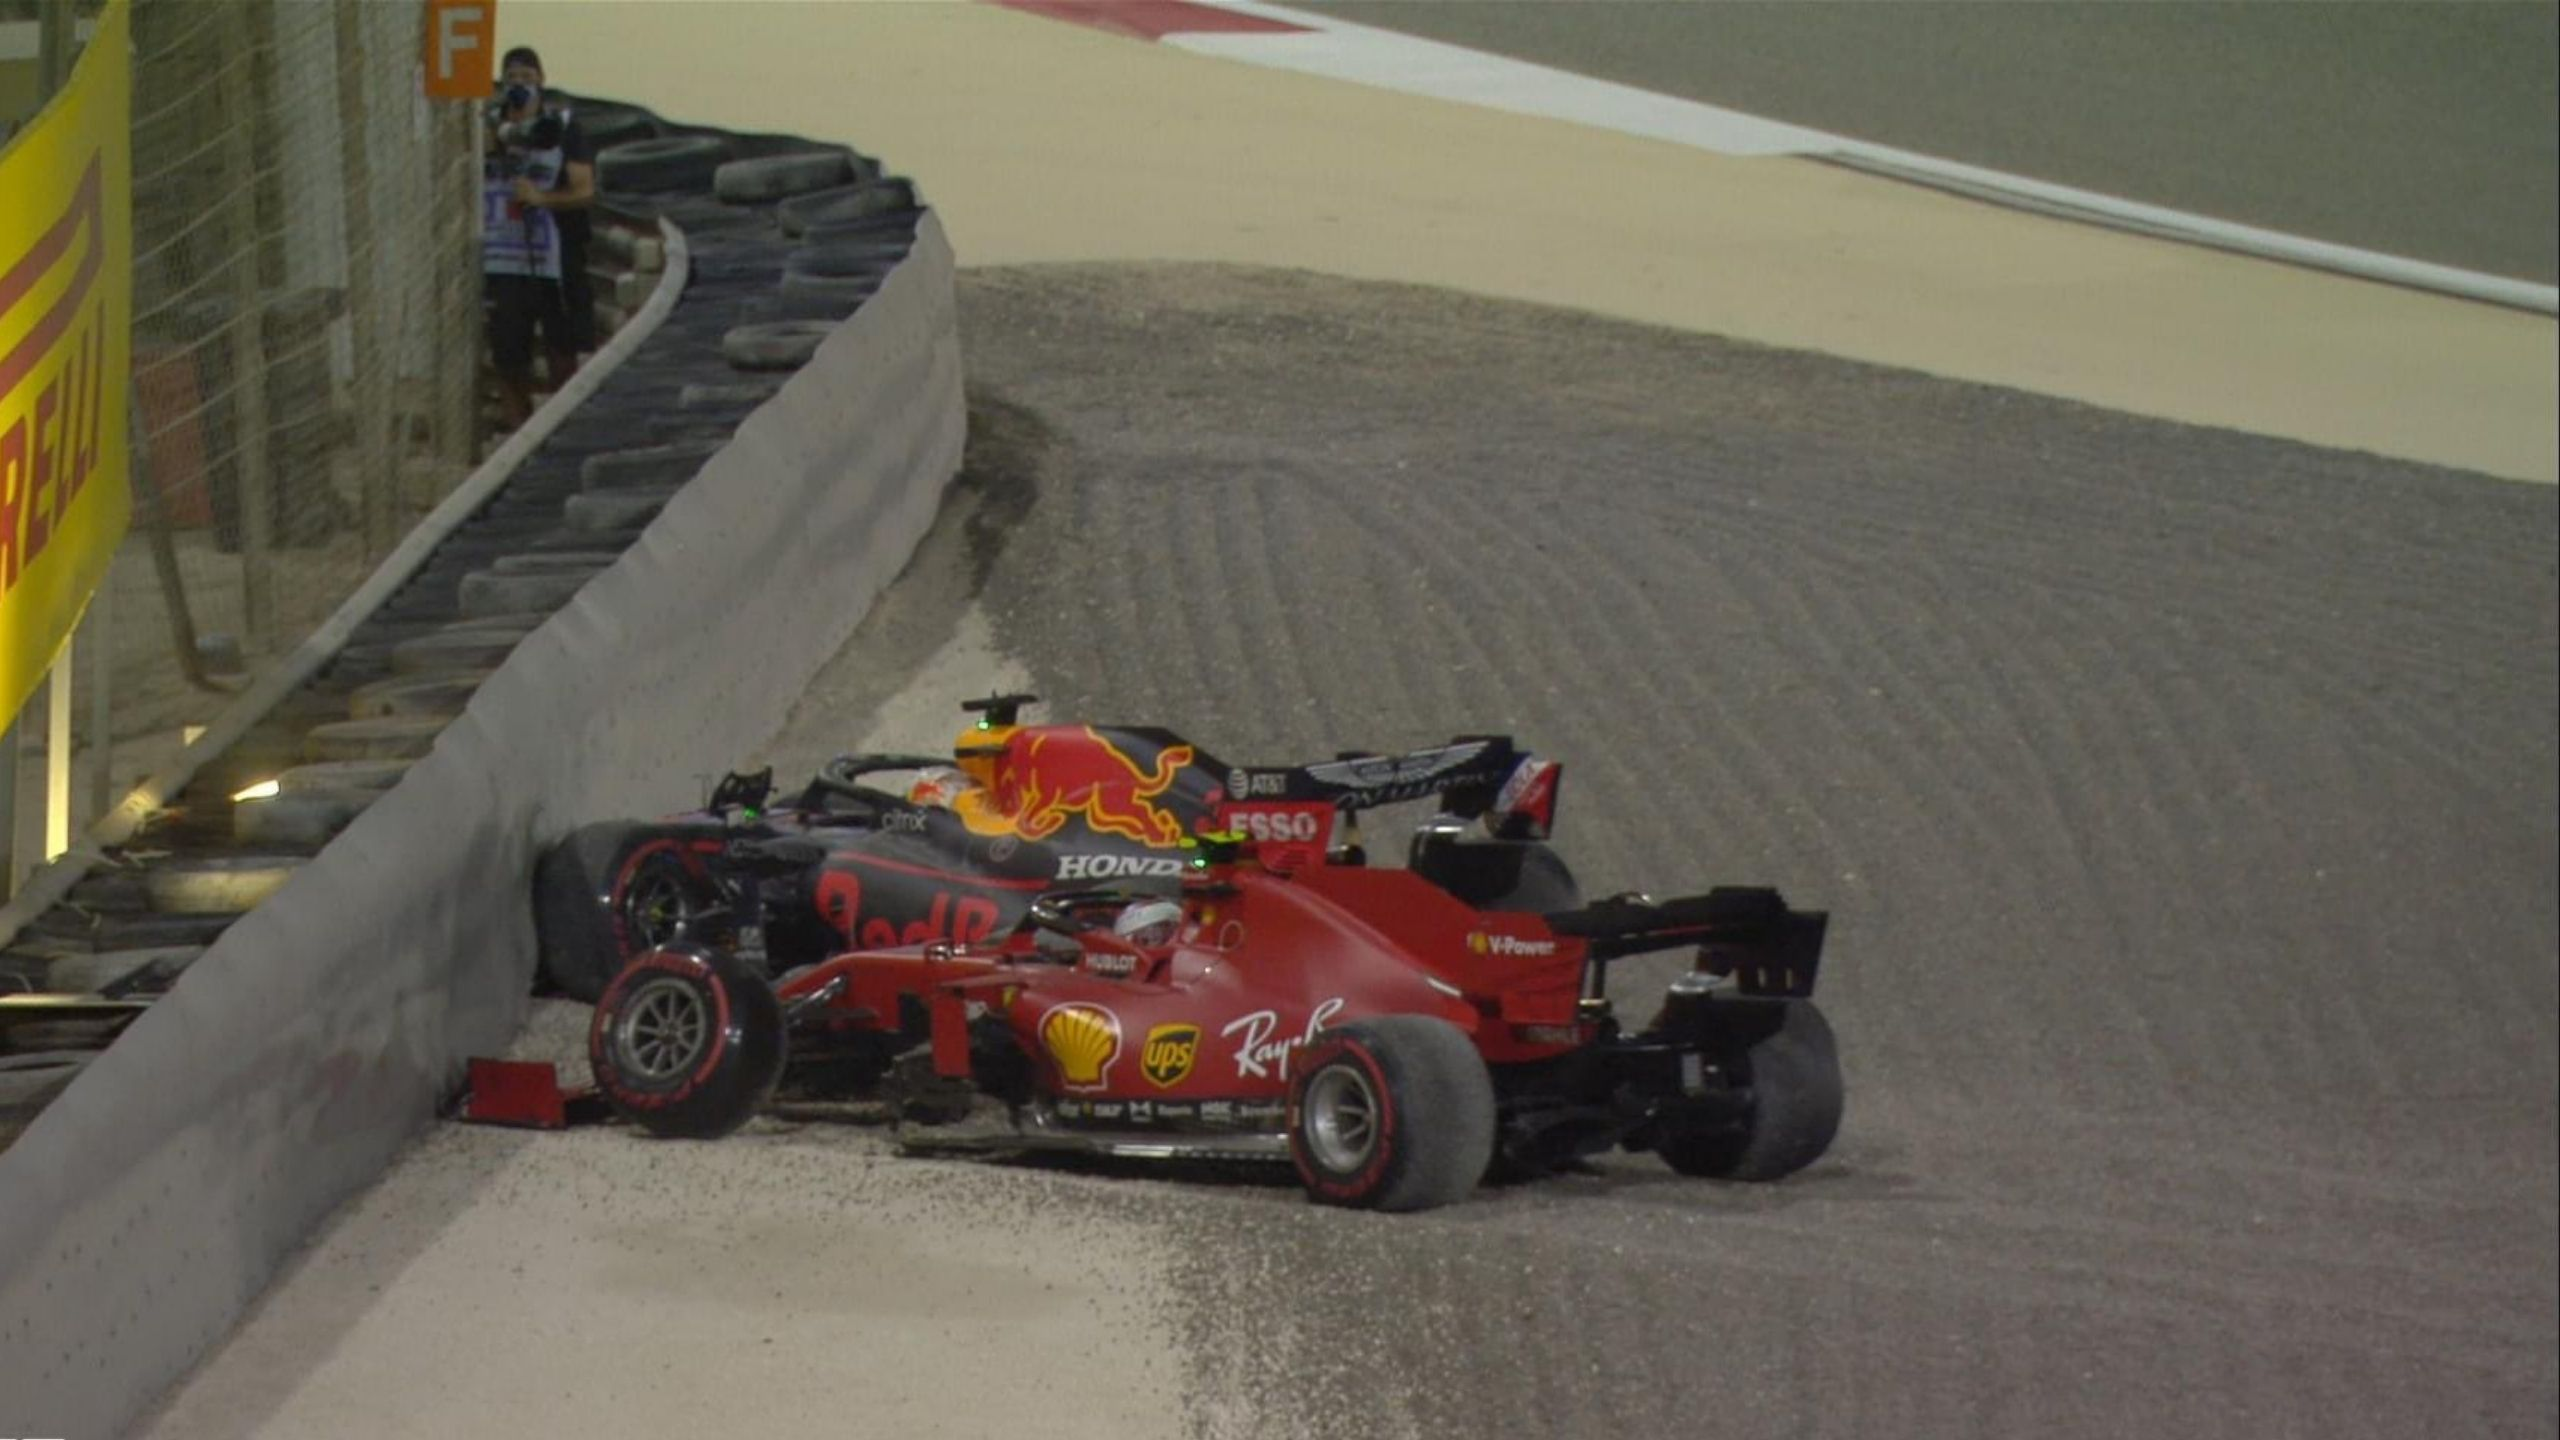 Sakhir GP: Max Verstappen and Charles Leclerc out in Lap 1 after the Red Bull and Ferrari collide